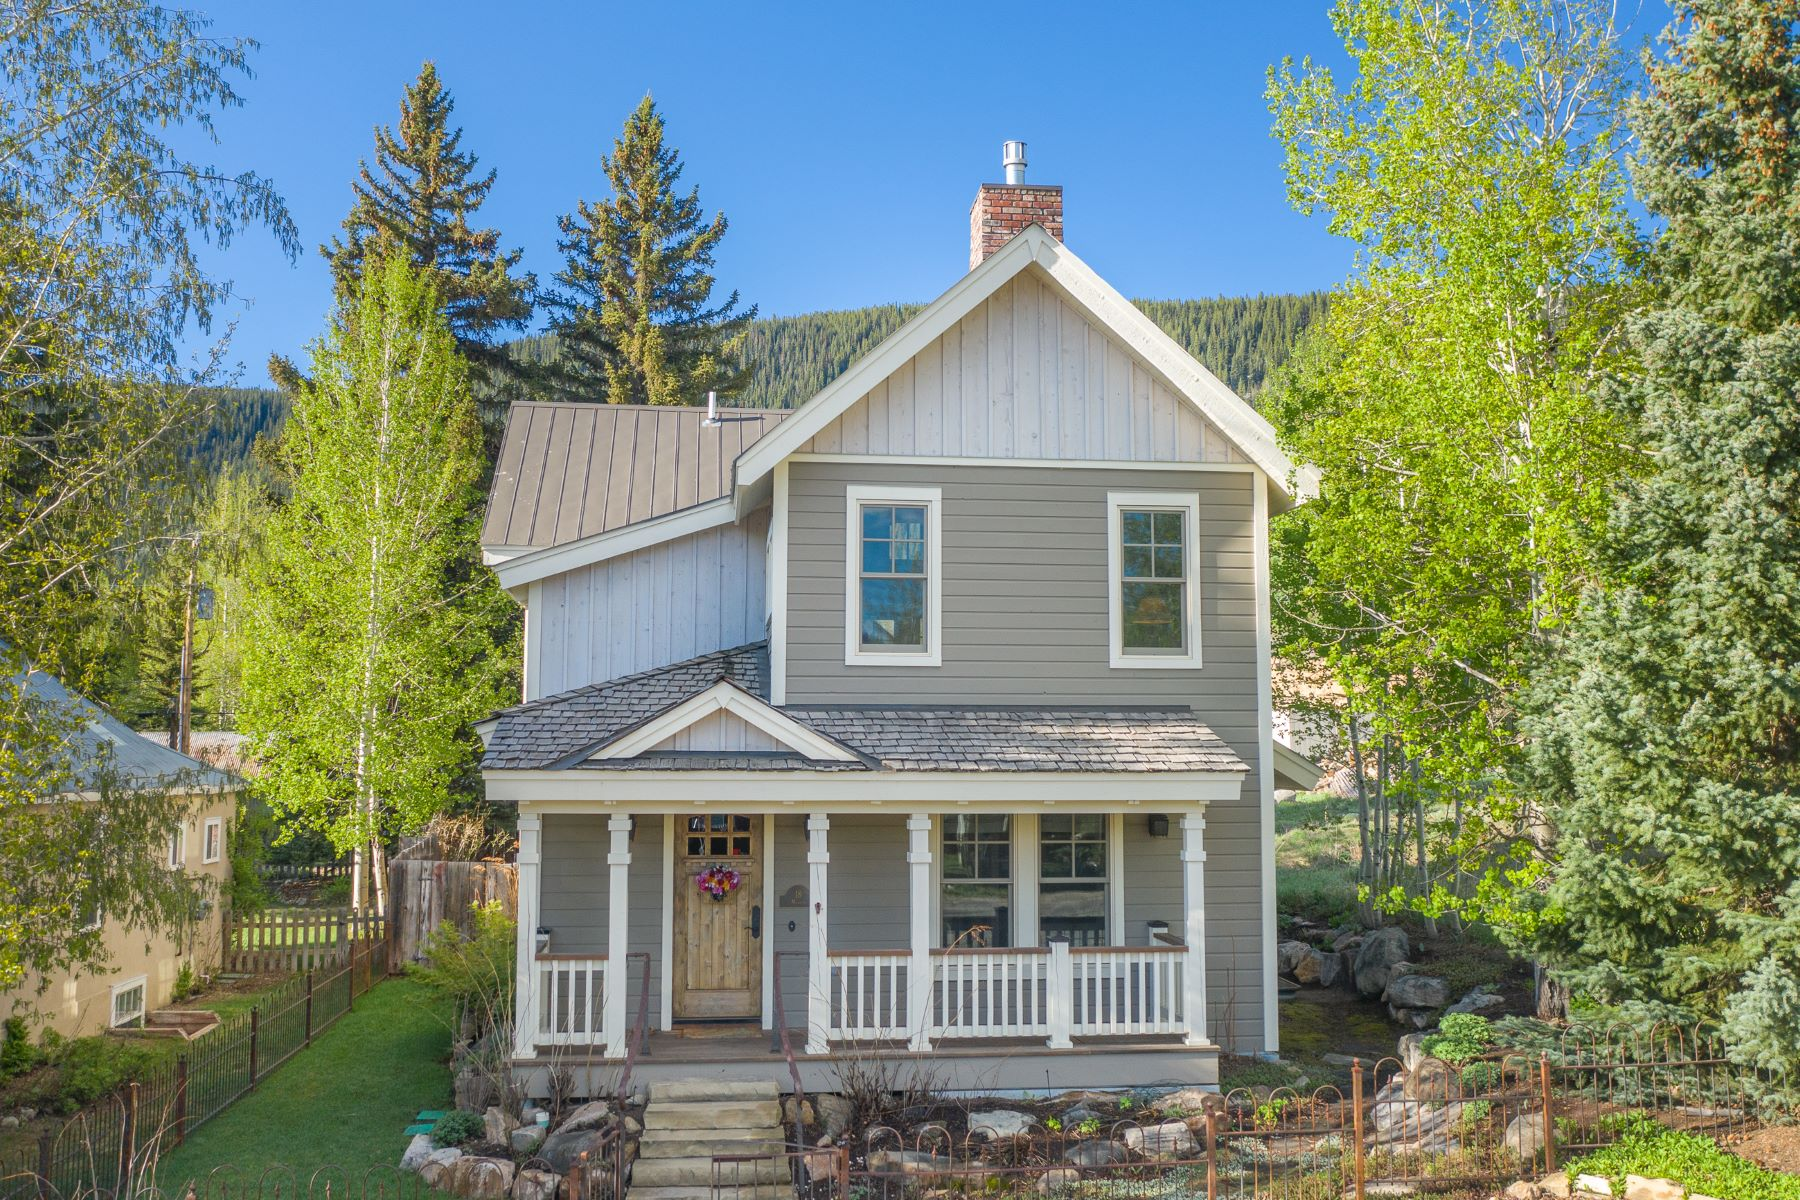 Single Family Homes for Sale at 18 Maroon Avenue Crested Butte, Colorado 81224 United States